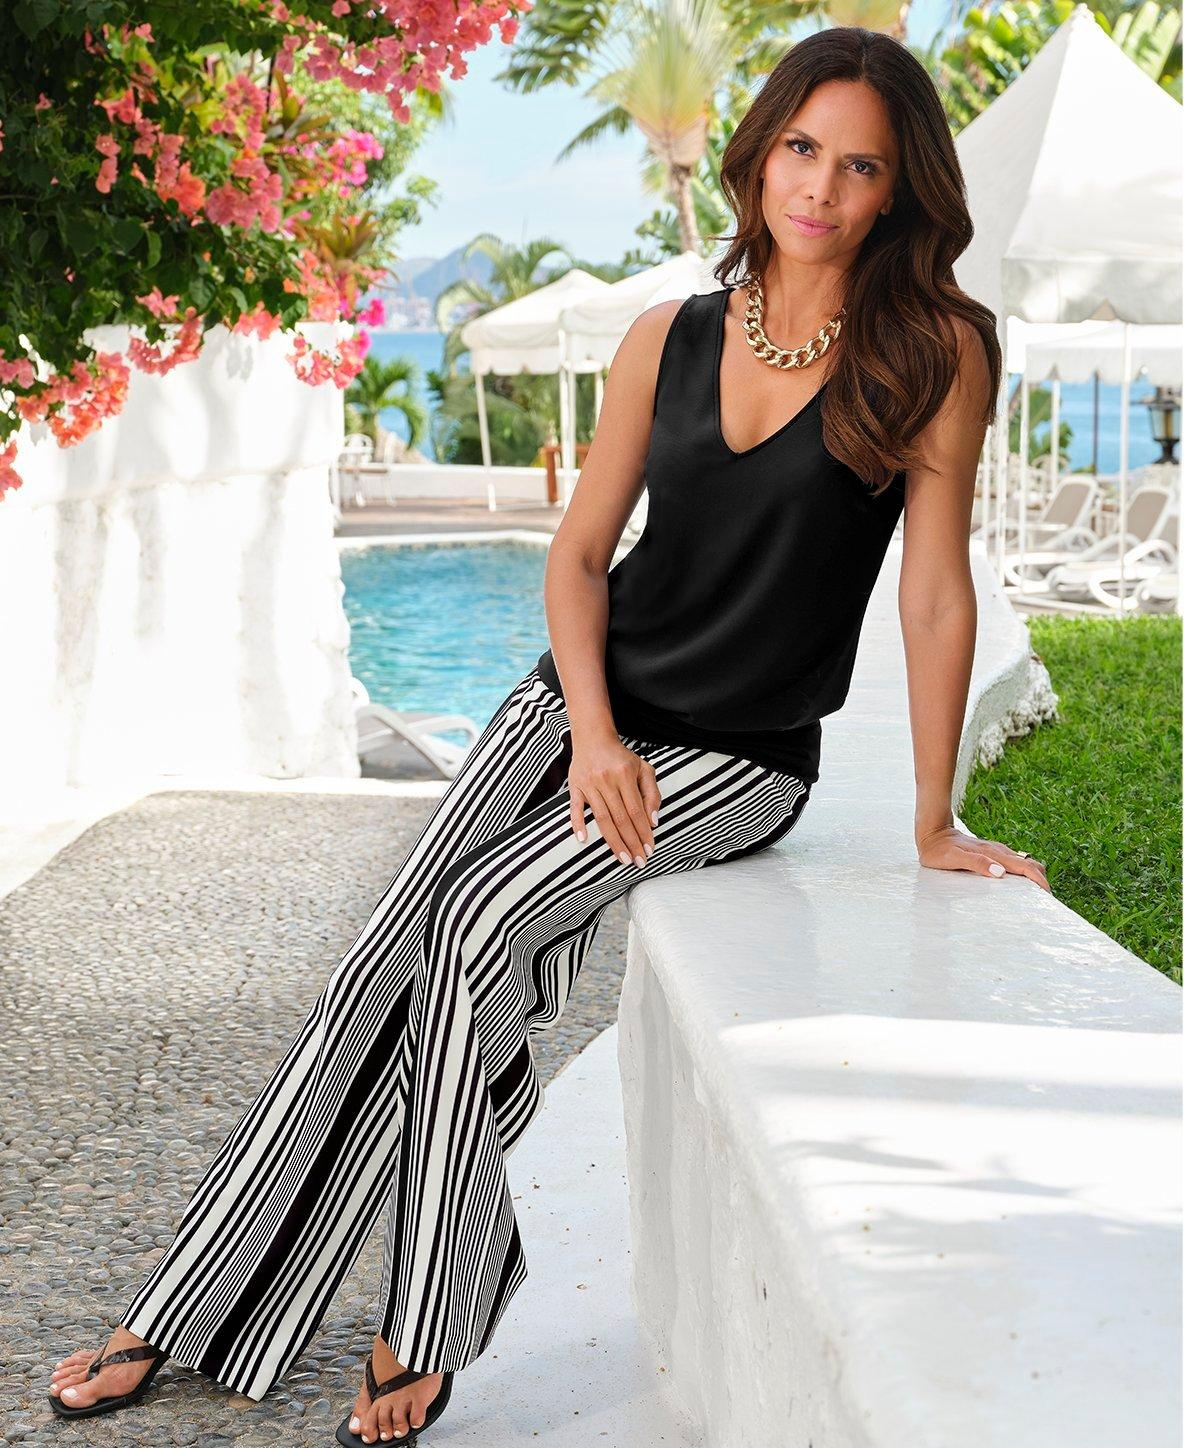 model wearing a black sleeveless blouson top, black and white striped palazzo pants, and a gold chain necklace.